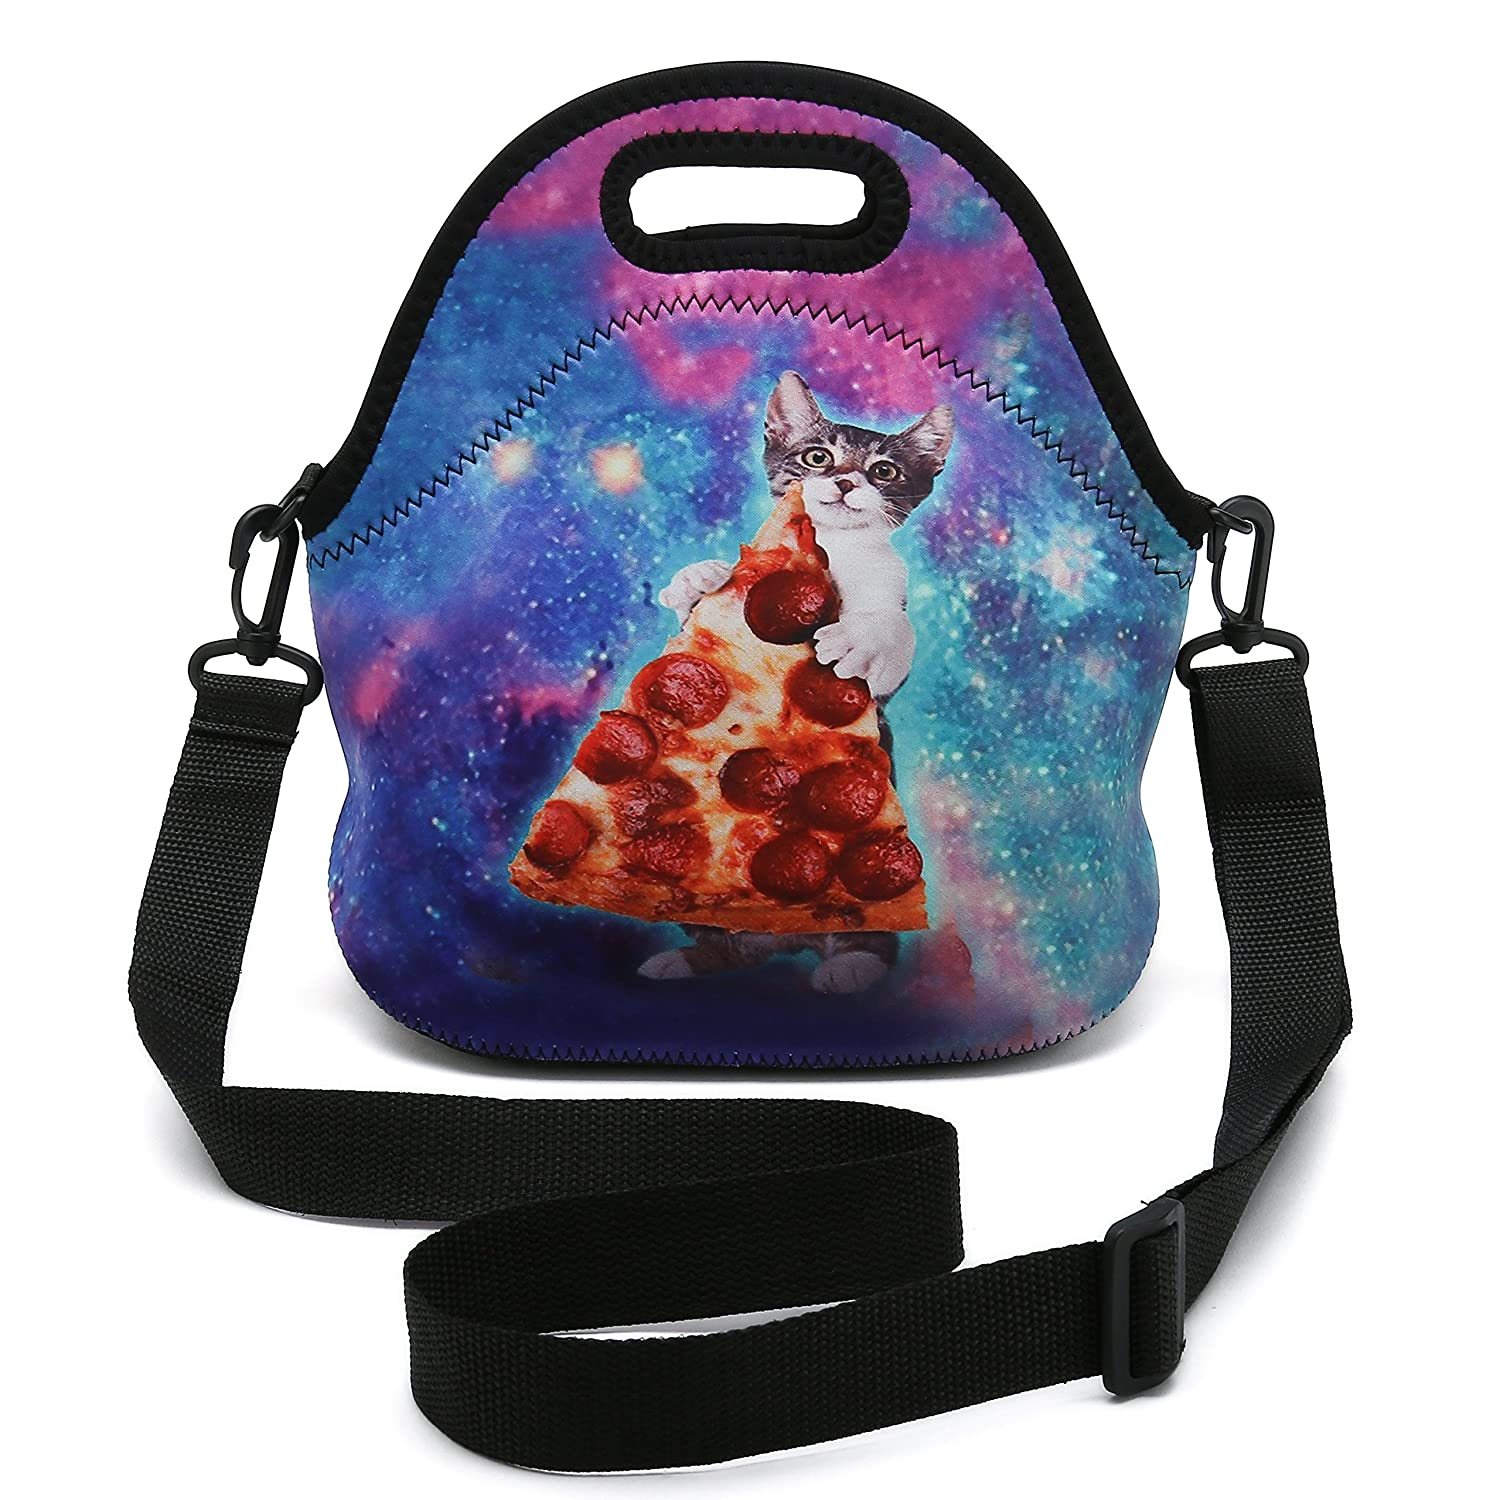 Cat Take Pizza Insulated Neoprene Lunch Bag Removable Shoulder Strap Reusable Thermal Thick Lunch Tote Bags for Women,Teens,Girls,Kids,Baby,AdultsLunch Boxes for Outdoors,Work,Office,School (Cute Pandas)